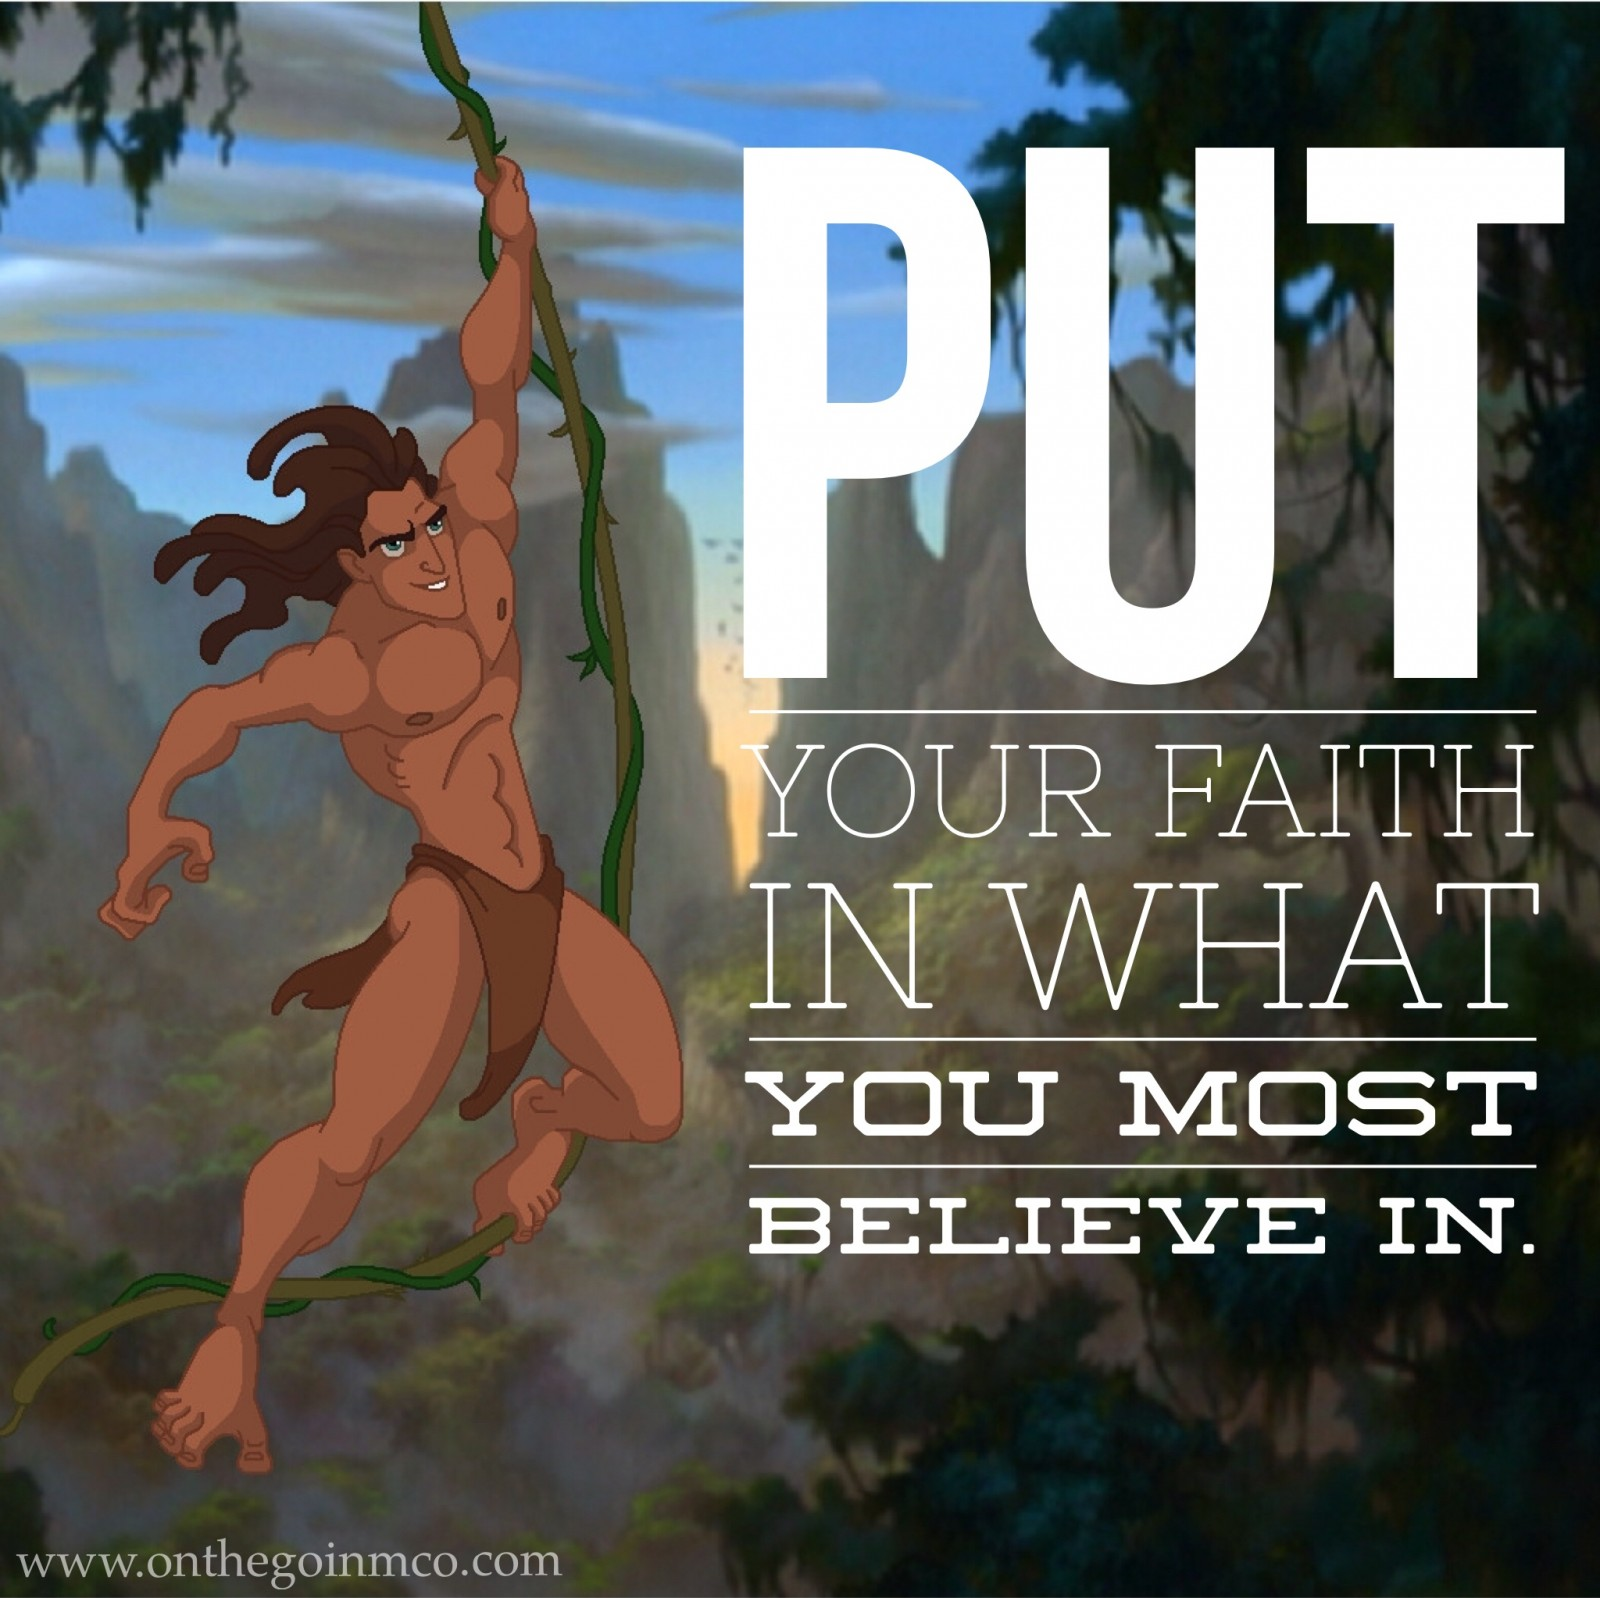 Disney Quotes Motivating Monday Tarzan